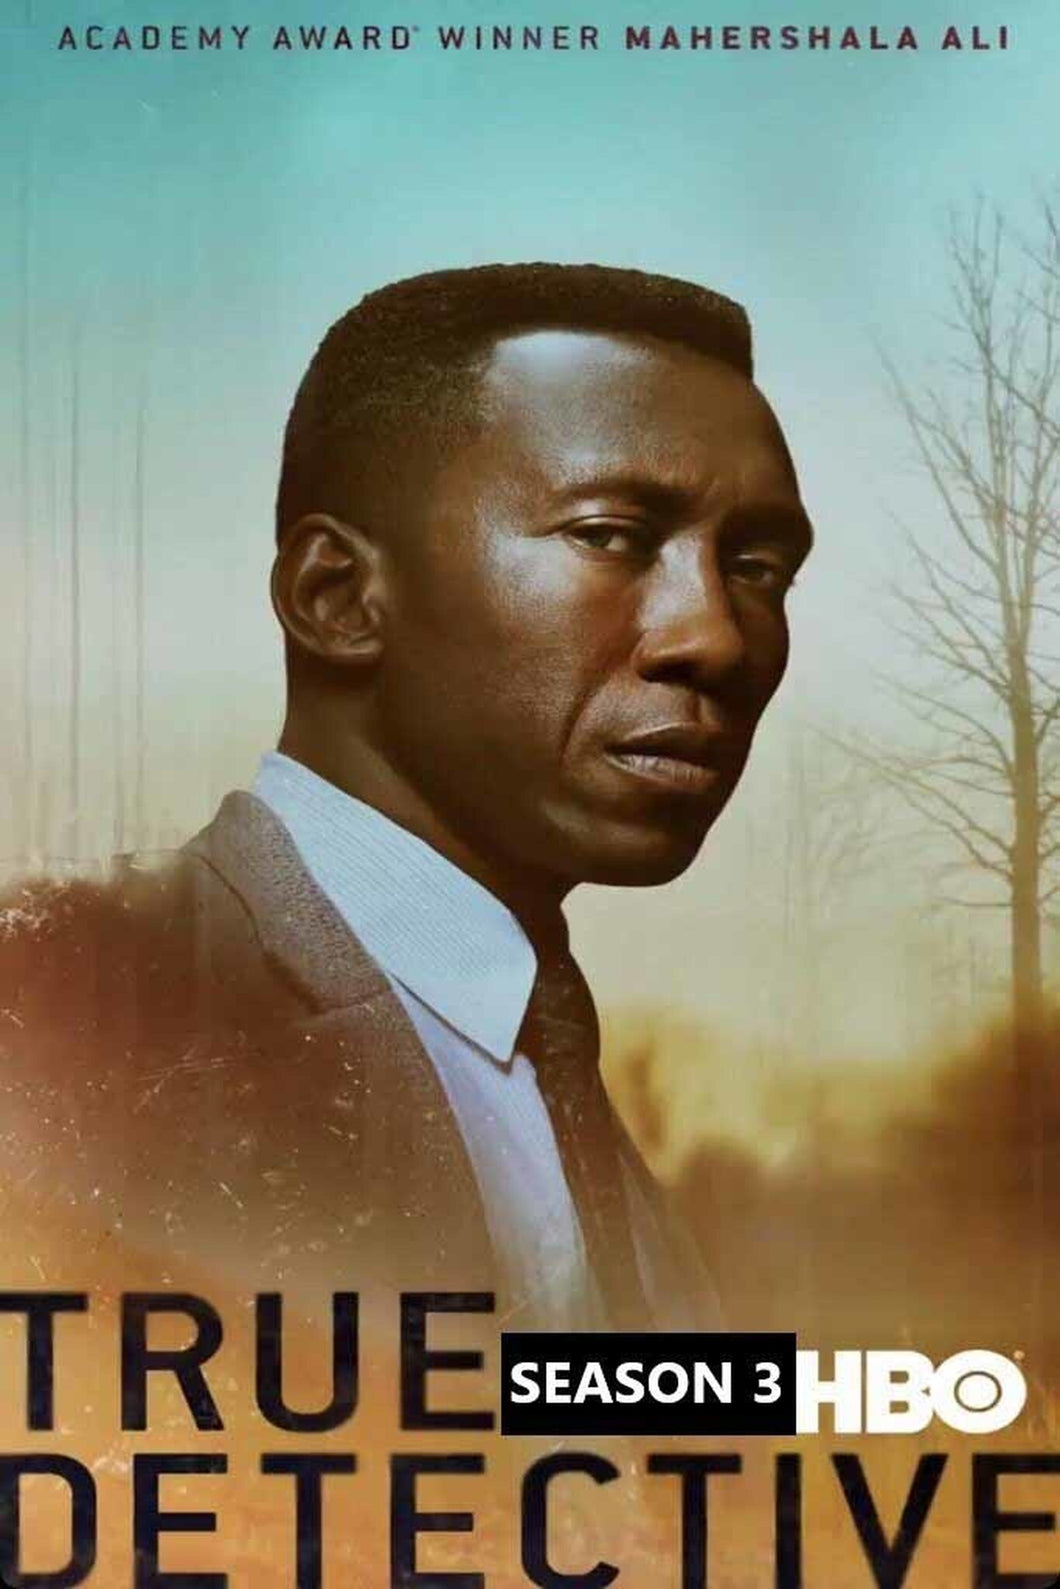 True Detective Season 3 HBO HD (Vudu)